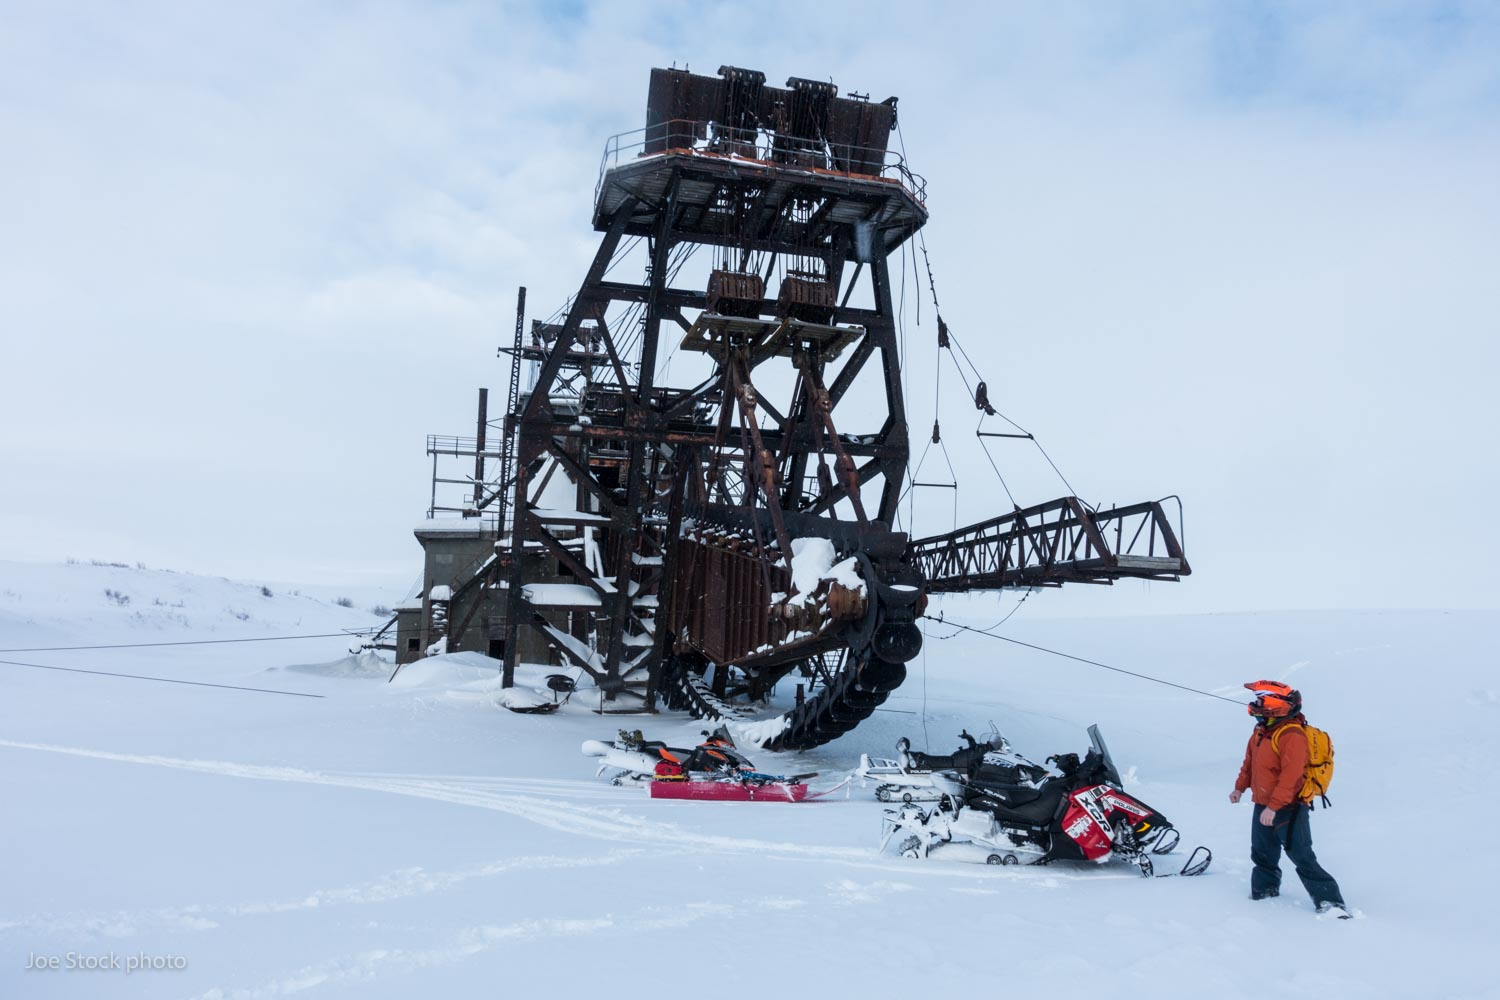 An abandoned dredge near Nome in western Alaska. I spent a week out here working with Ben Rowe, Chris Shannon and Sean Jones, helping them set up their ski guiding operation in the beautiful Kigluaik Mountains. These guys have the local knowledge and all the Alaska gear: snowmachines, airplanes and helicopters. A storm of the decade kept us from the summits, but not from learning a ton and having a blast.